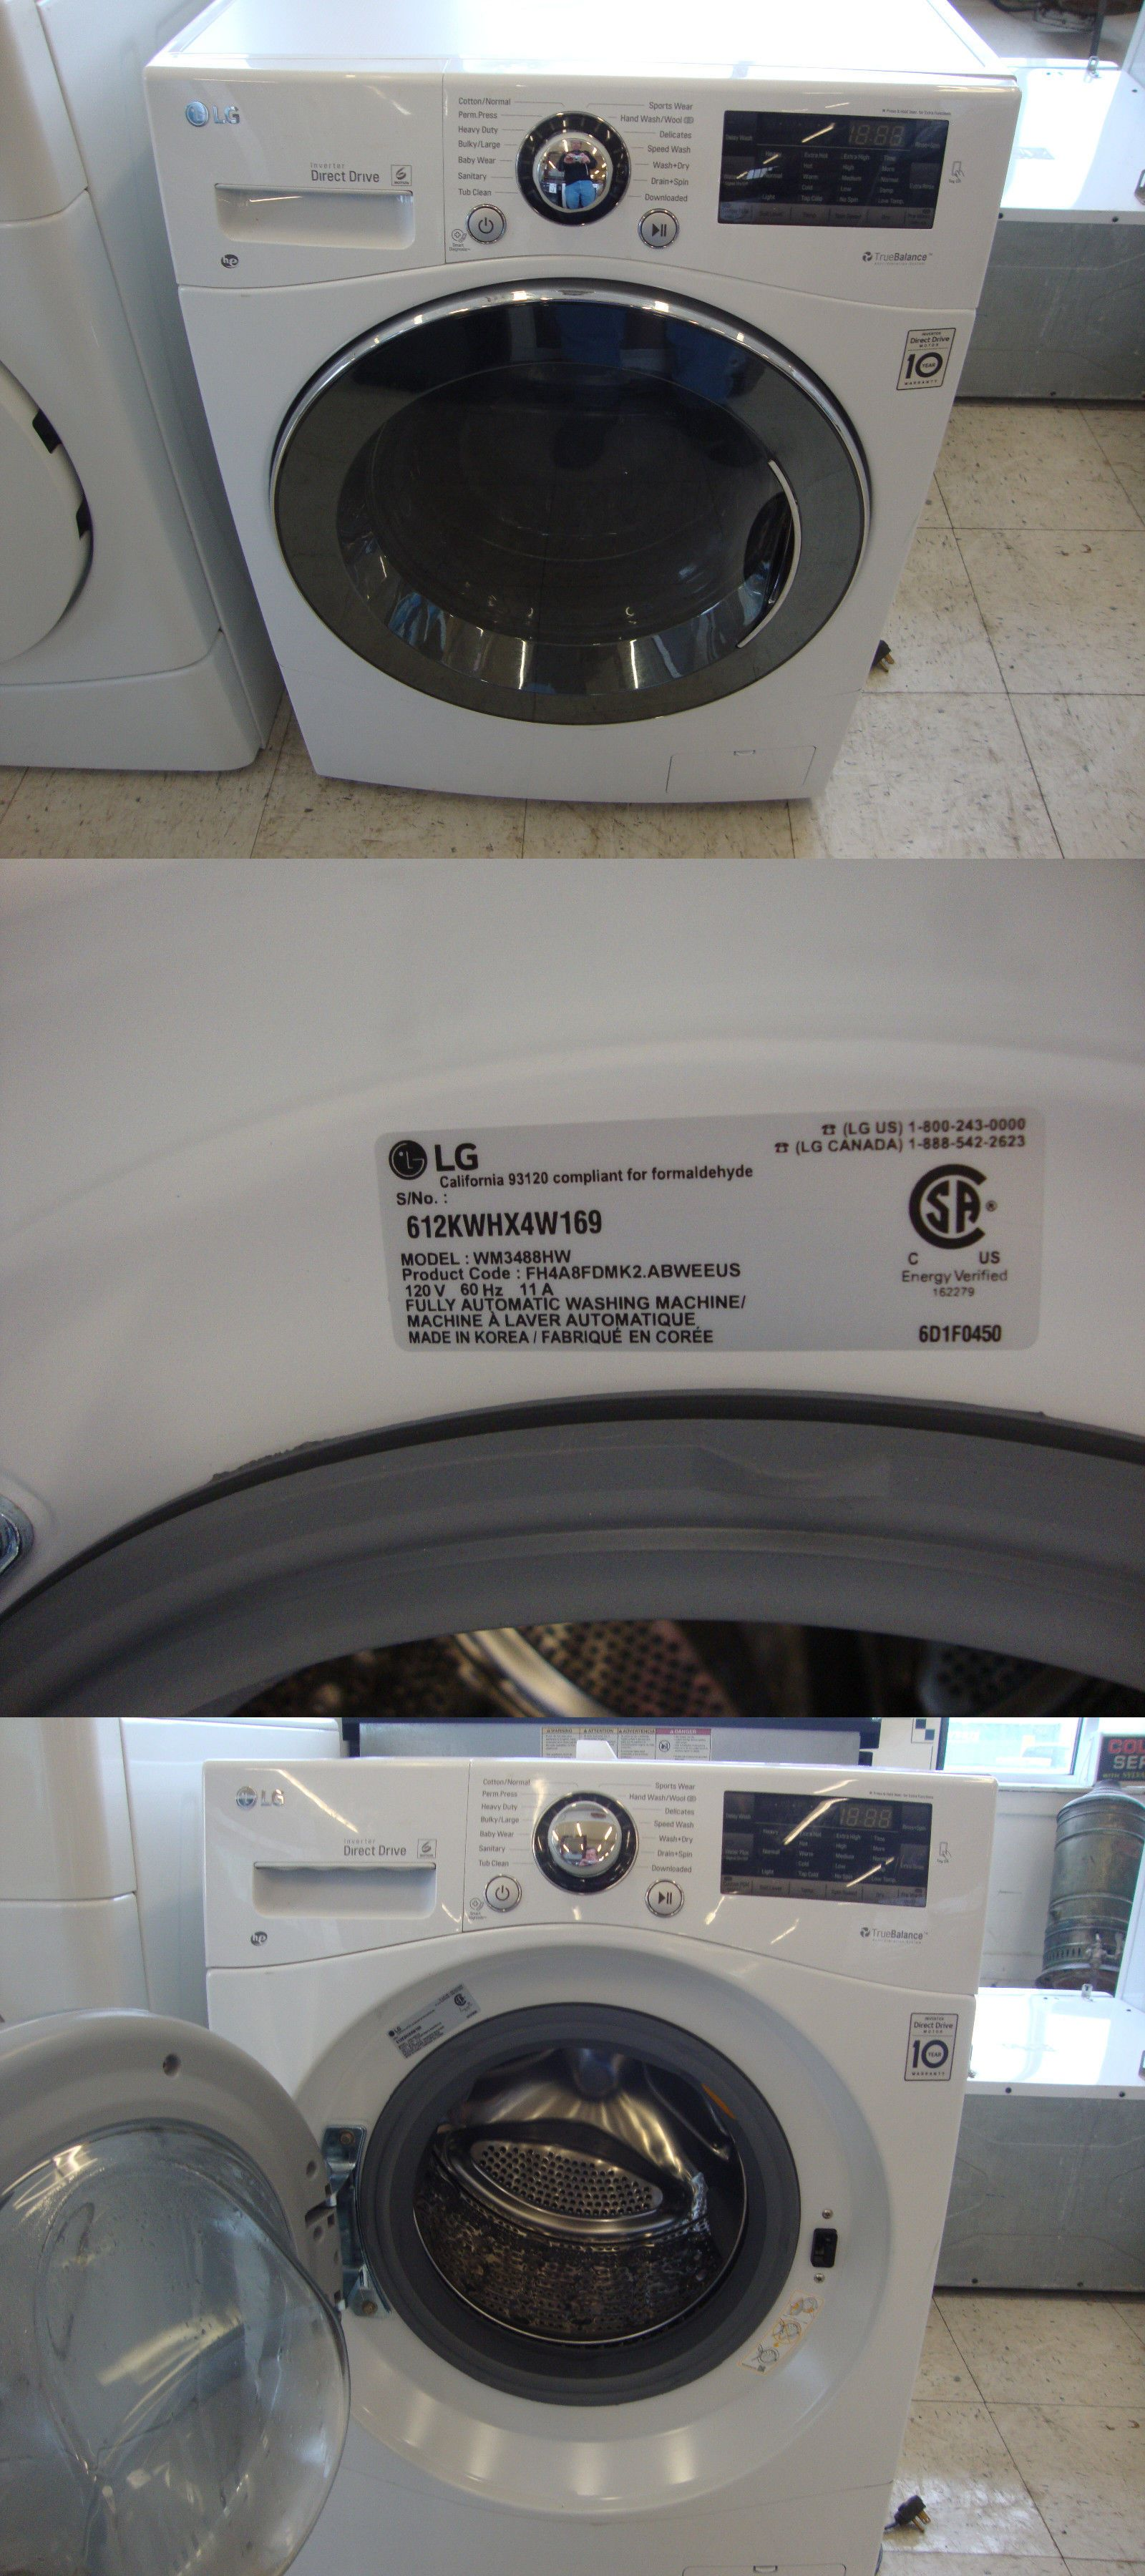 Washer Dryer Combinations And Sets 71257 Wm3488hw L G 24 Ventless Washer Dryer Combo Buy It No Combination Washer Dryer Washer Dryer Combo Washer And Dryer